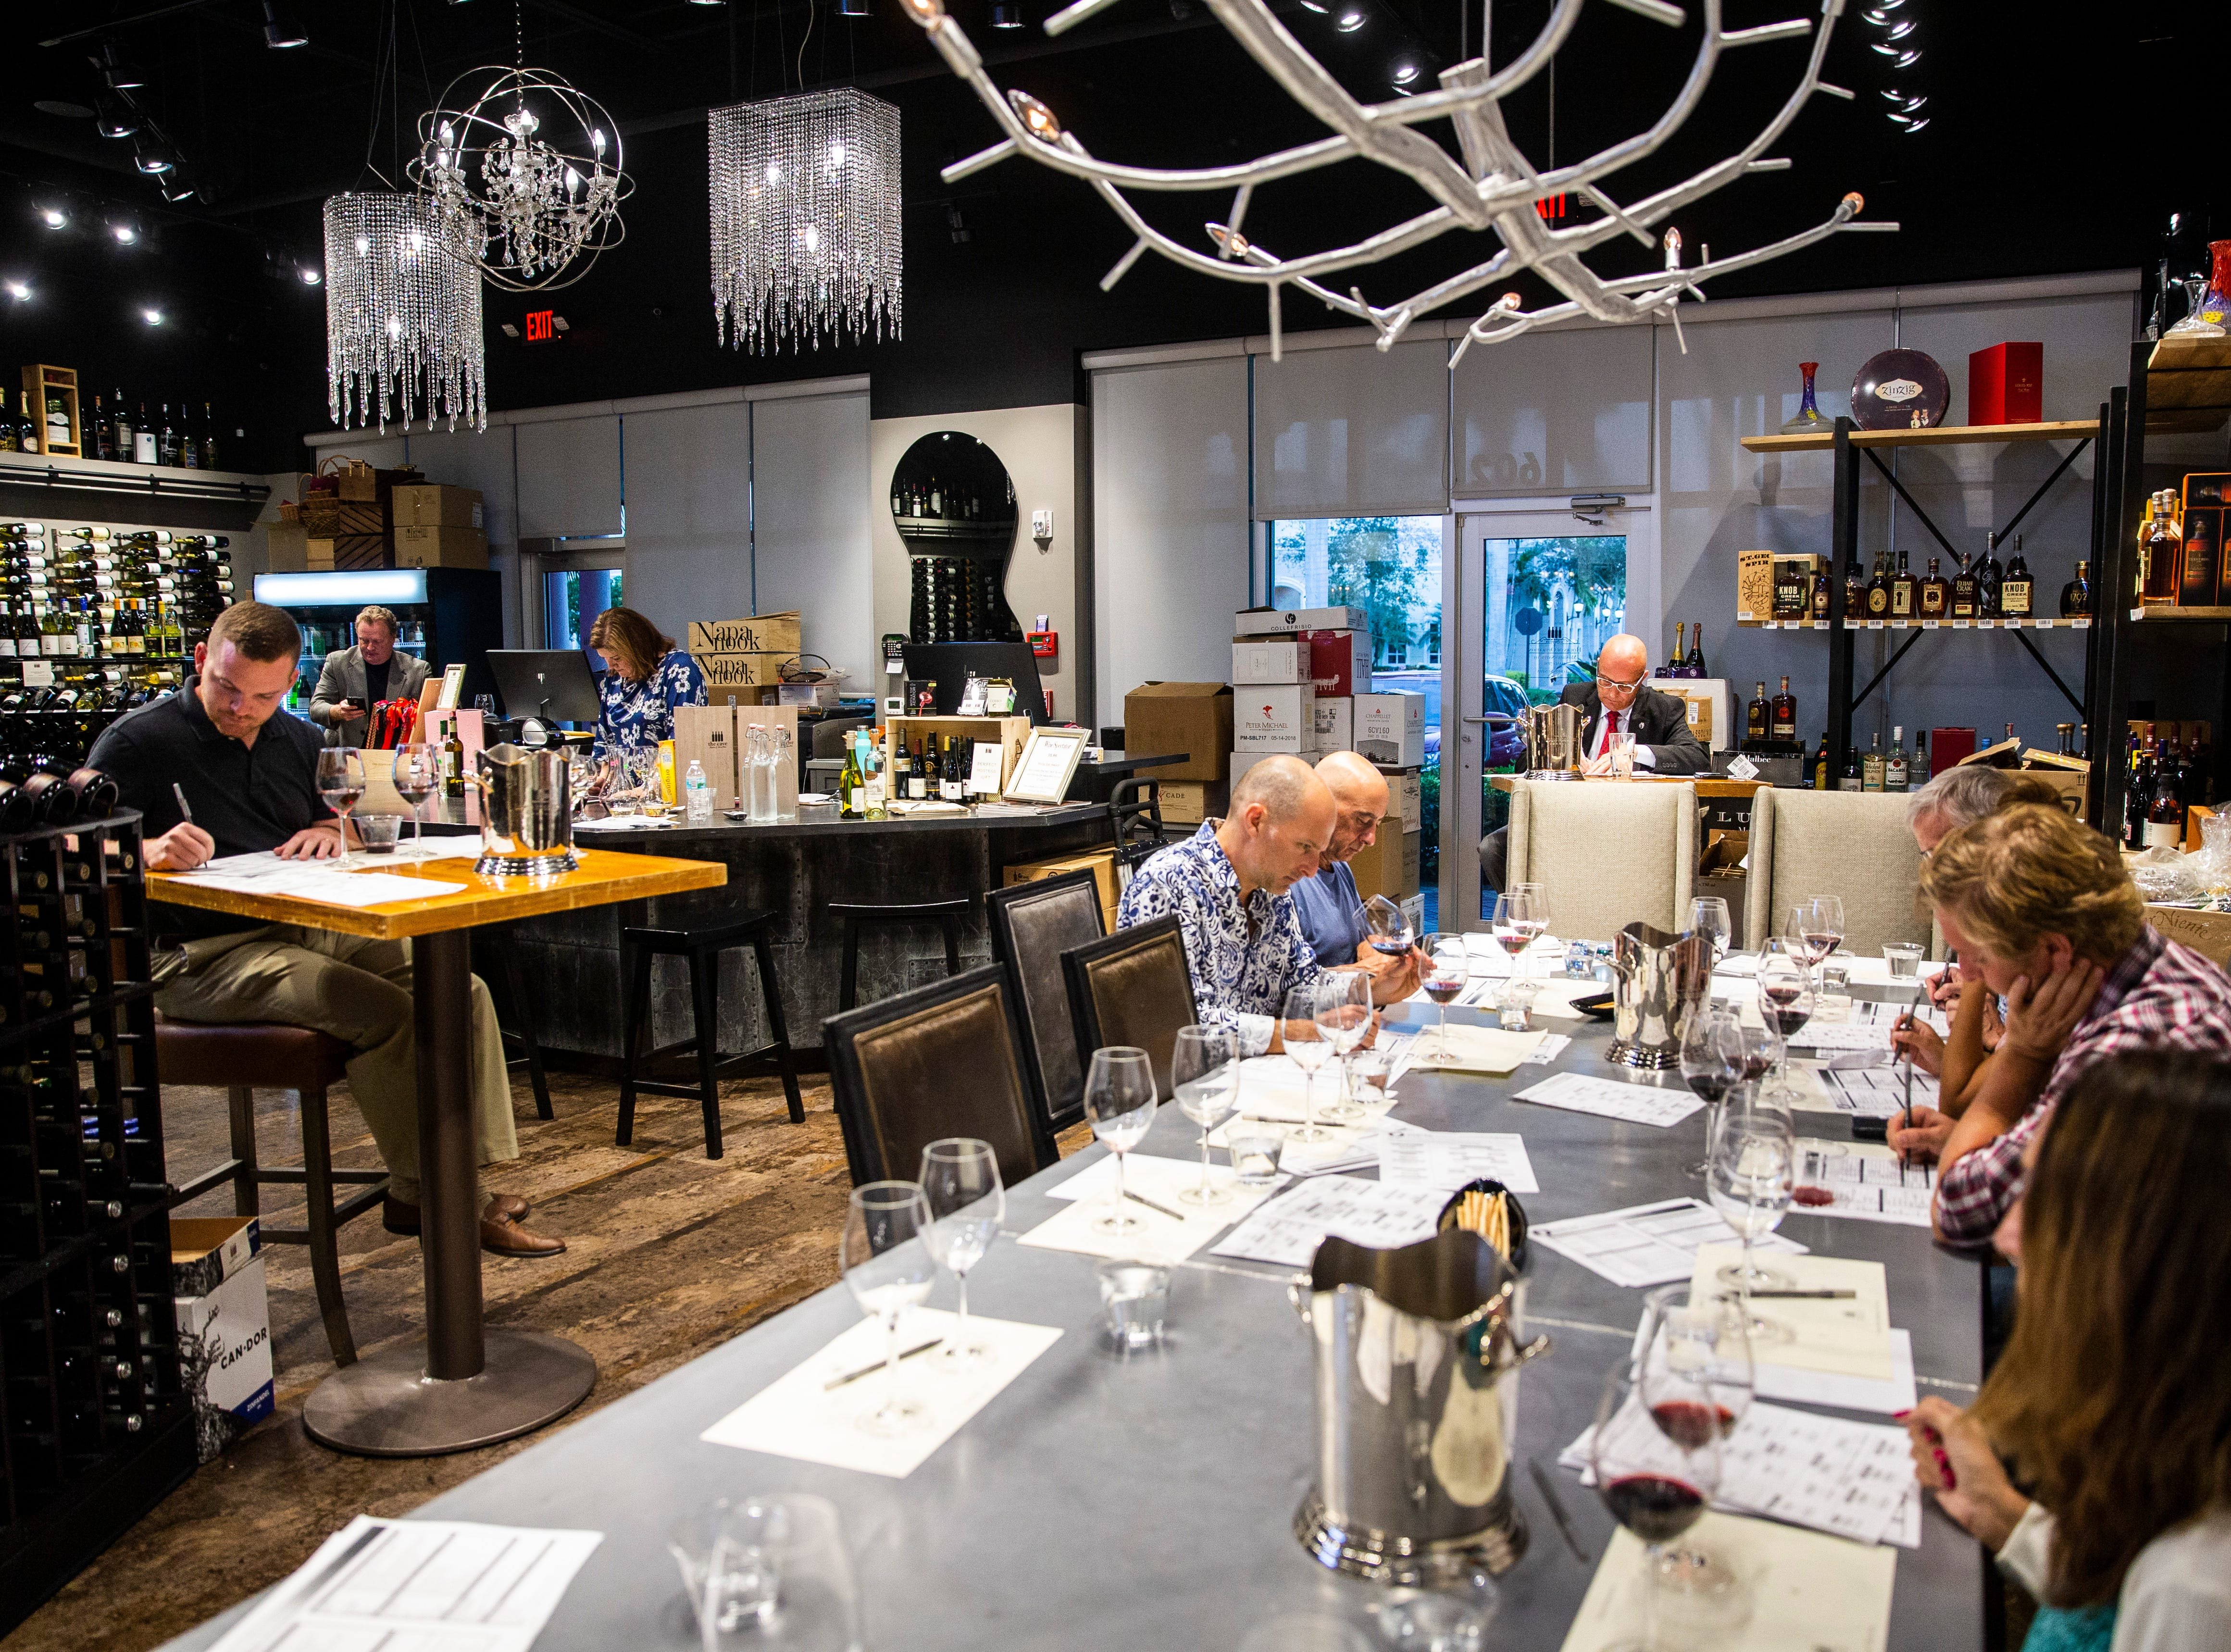 Eric Blais, the wine director and certified sommelier at USS Nemo, competes in the Somms Showdown, organized by Break Thru Beverage Group, at The Cave Bistro & Wine Bar in Naples on Tuesday, Nov. 13, 2018.